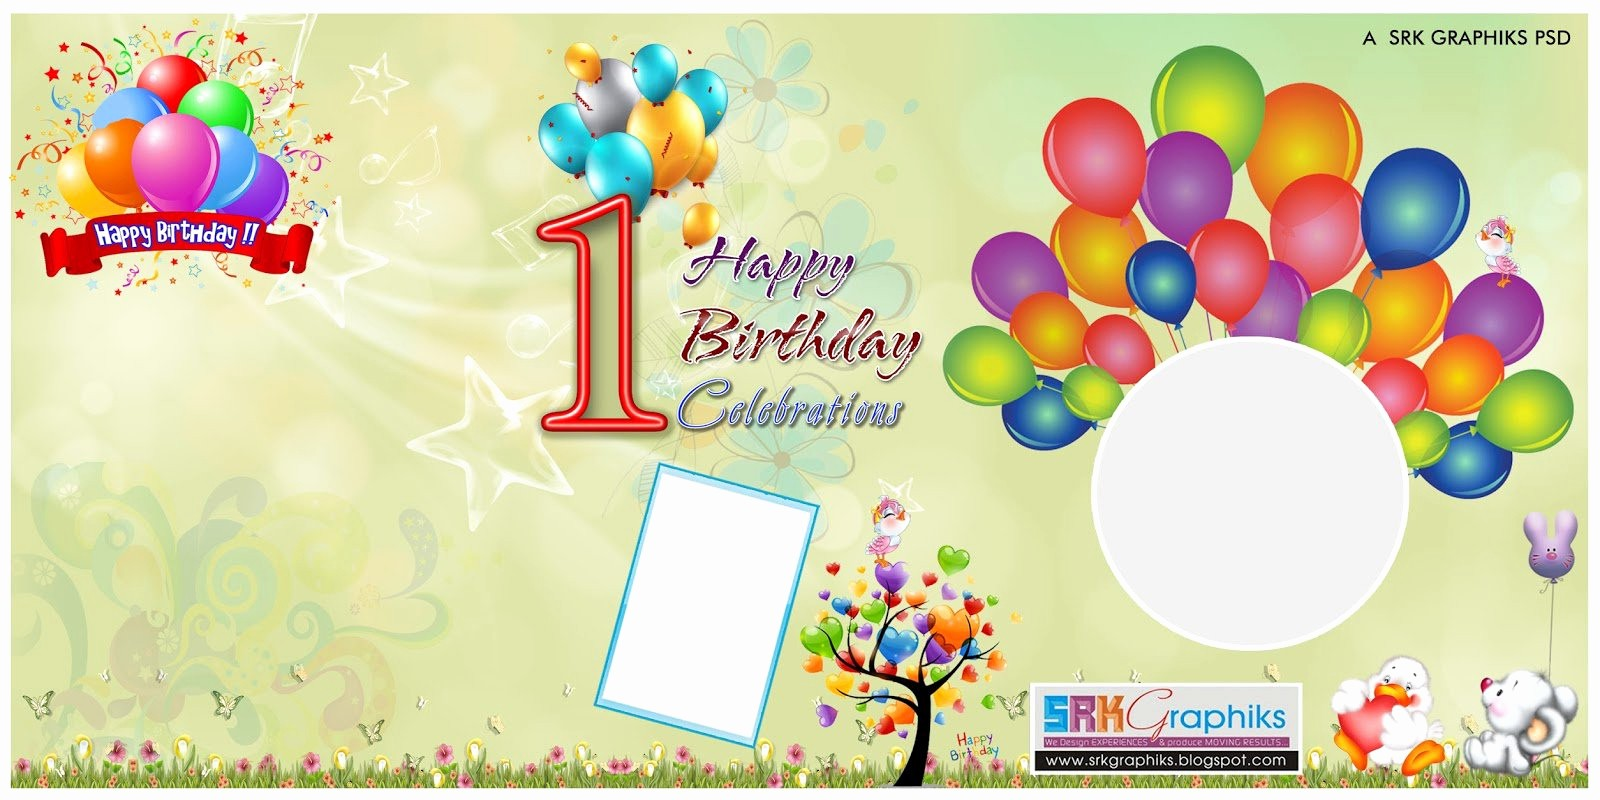 Party Invitation Templates Free Download Best Of Birthday Invitation Templates Free Download